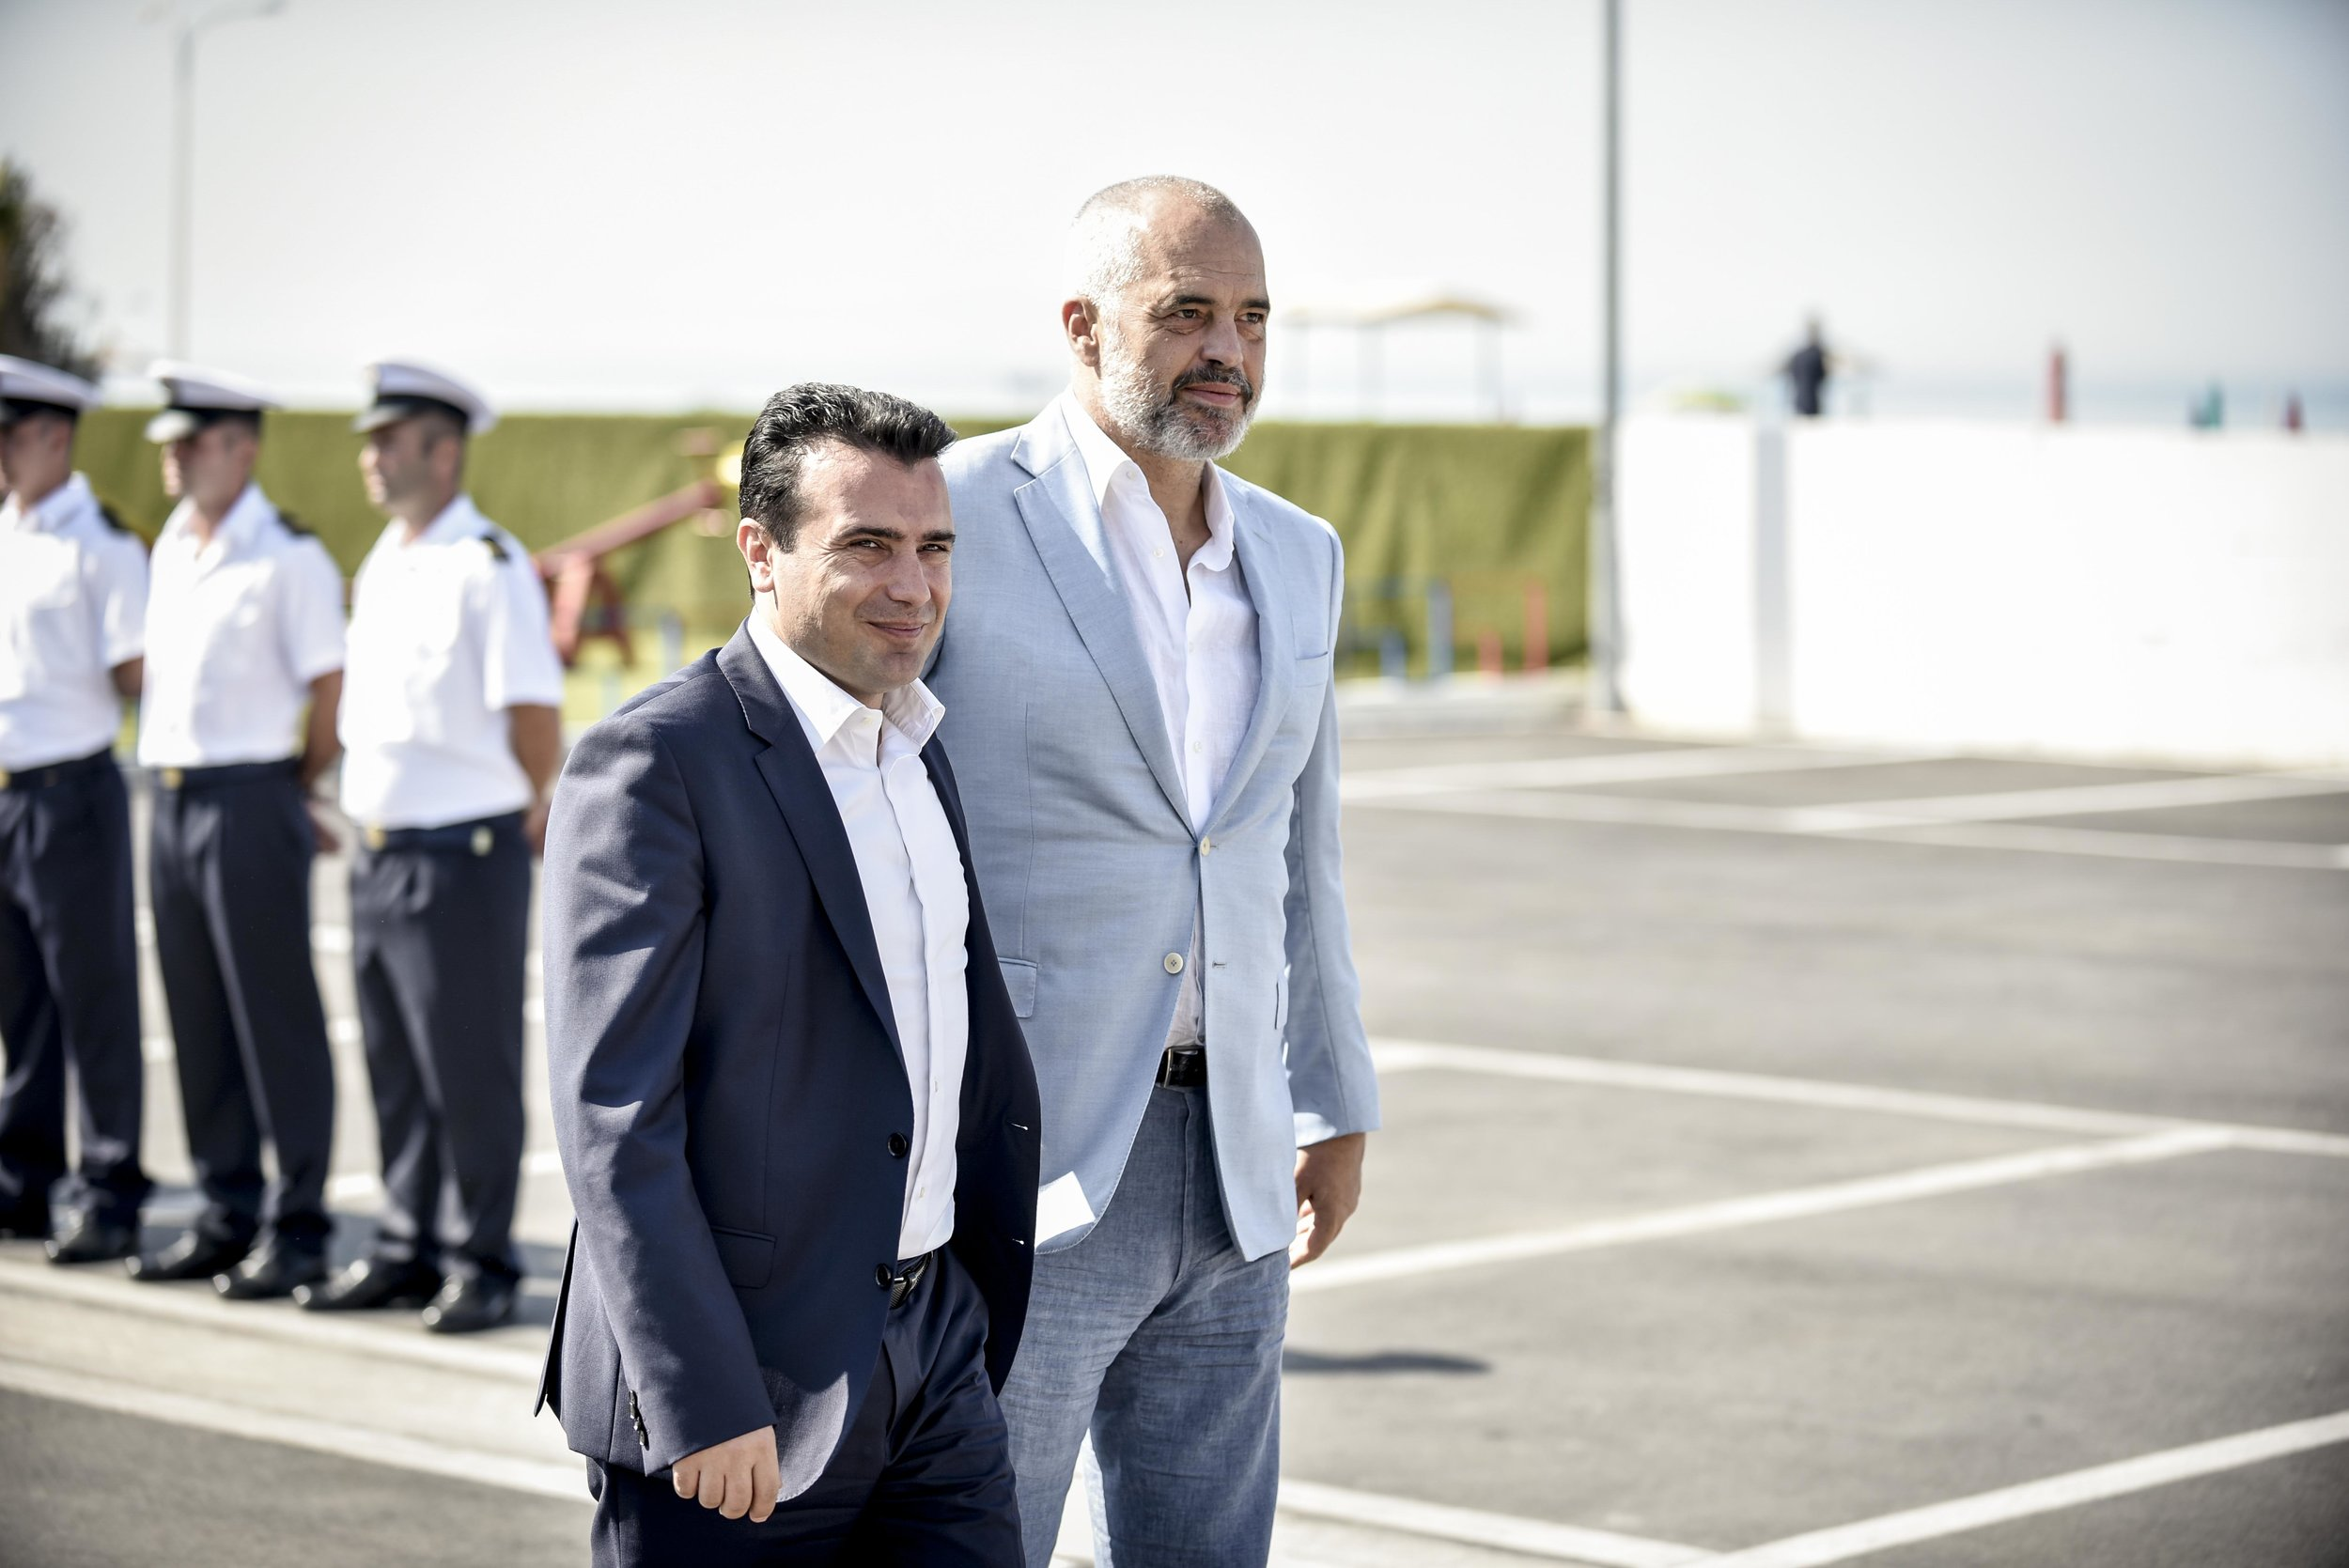 Albanian Prime Minister Edi Rama, right, pictured in 2017 with North Macedonian Prime Minister Zoran Zaev, left, during a meeting of Balkan leaders in Durres, Albania. (Wikimedia Commons)